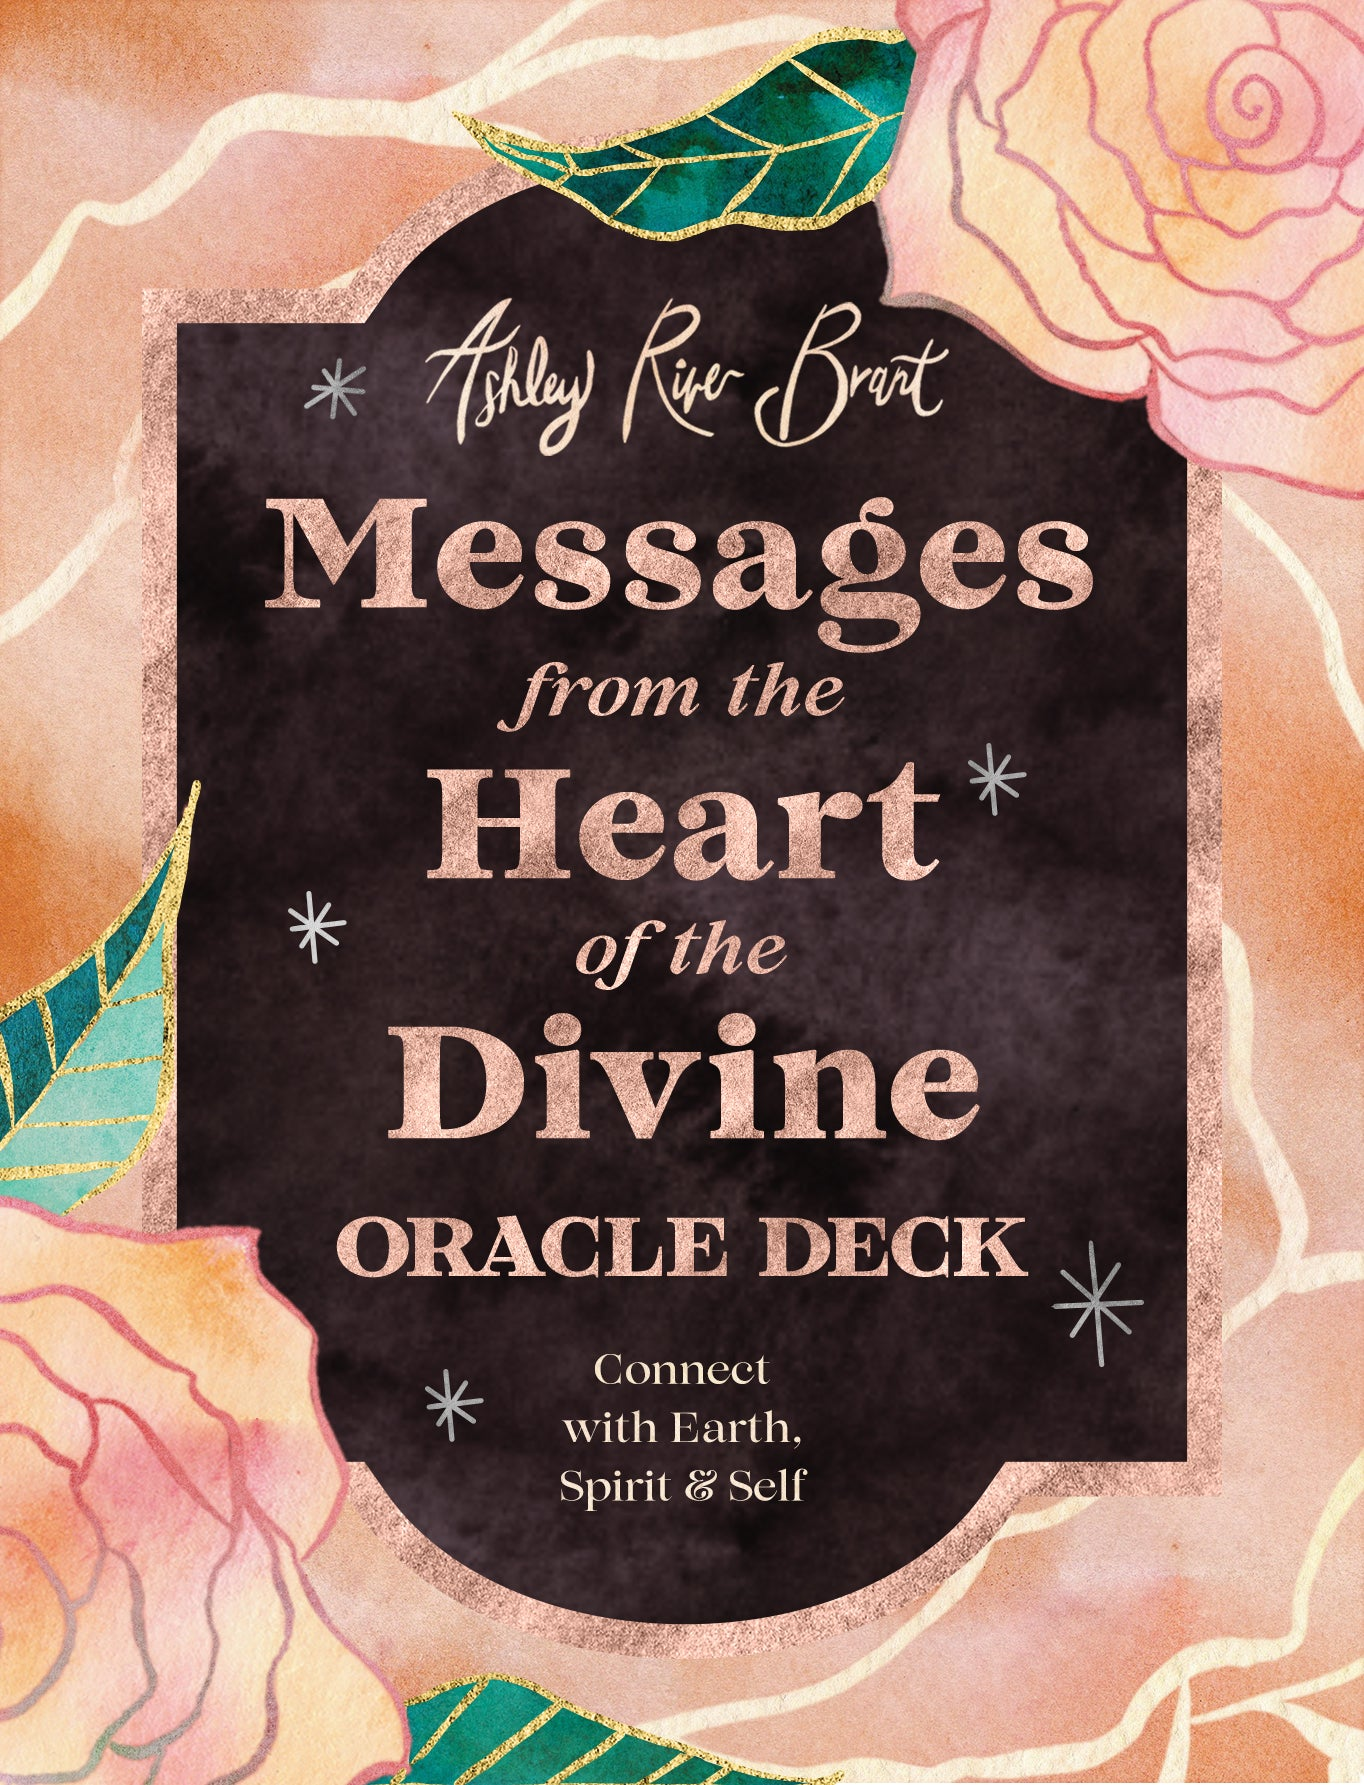 Messages from the Heart of the Divine Oracle Deck